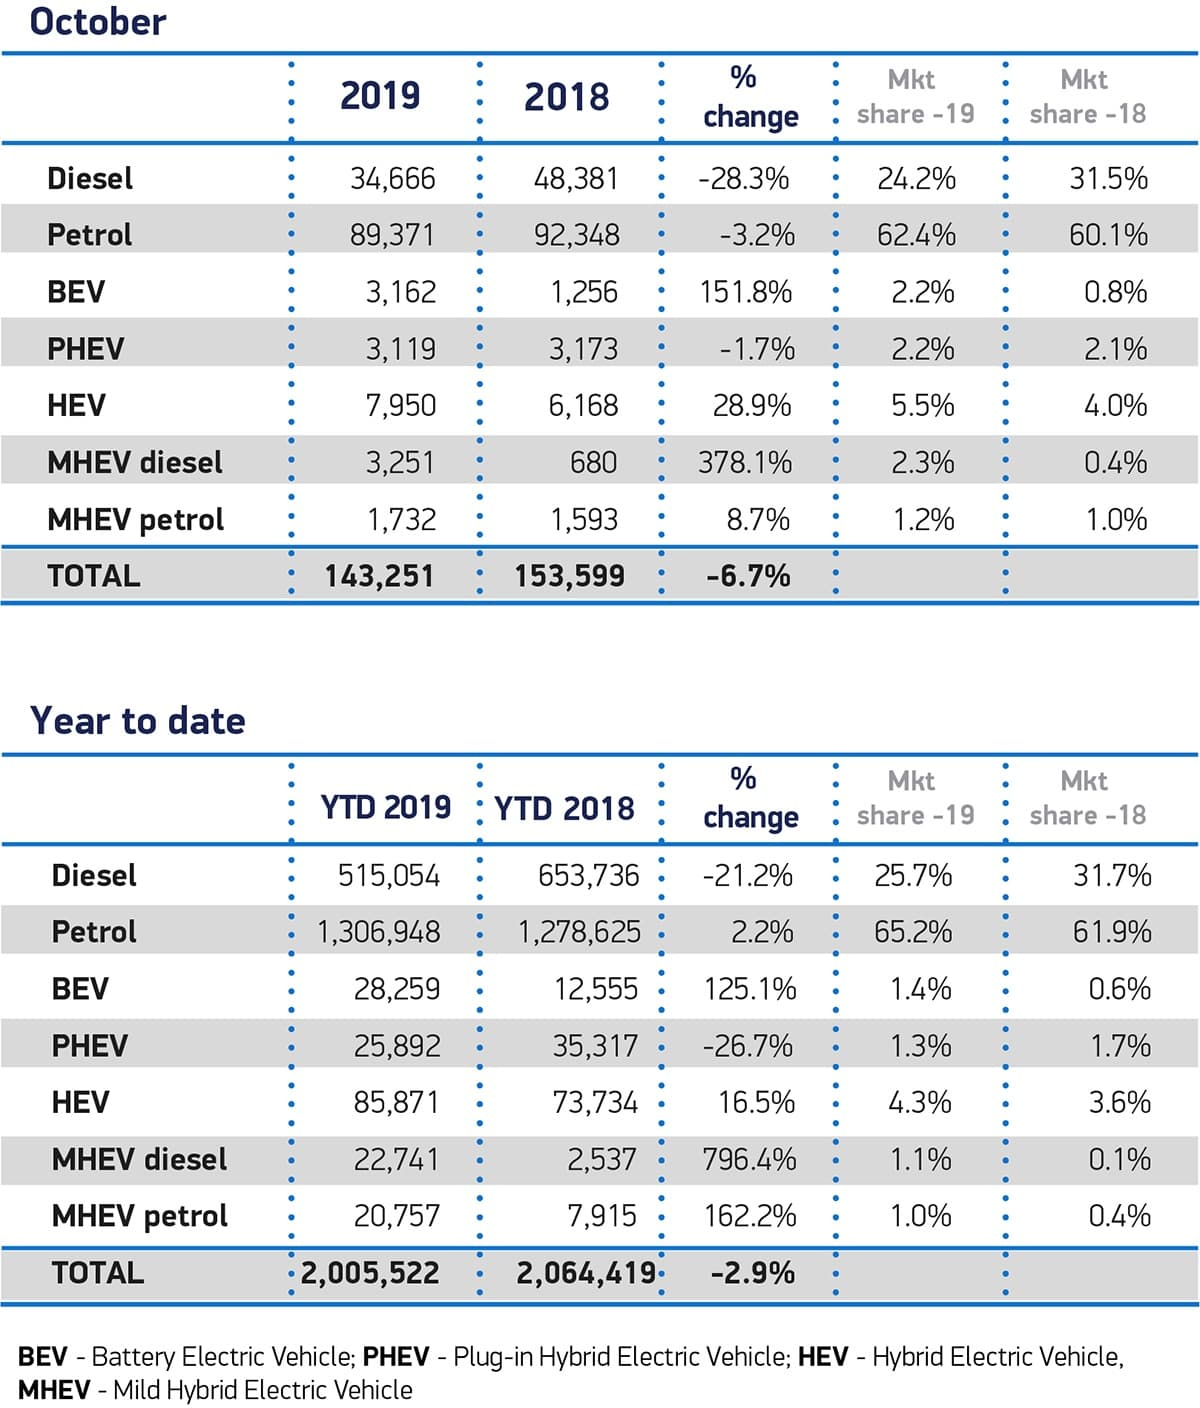 New car registrations by fuel source, October 2019 | The Car Expert